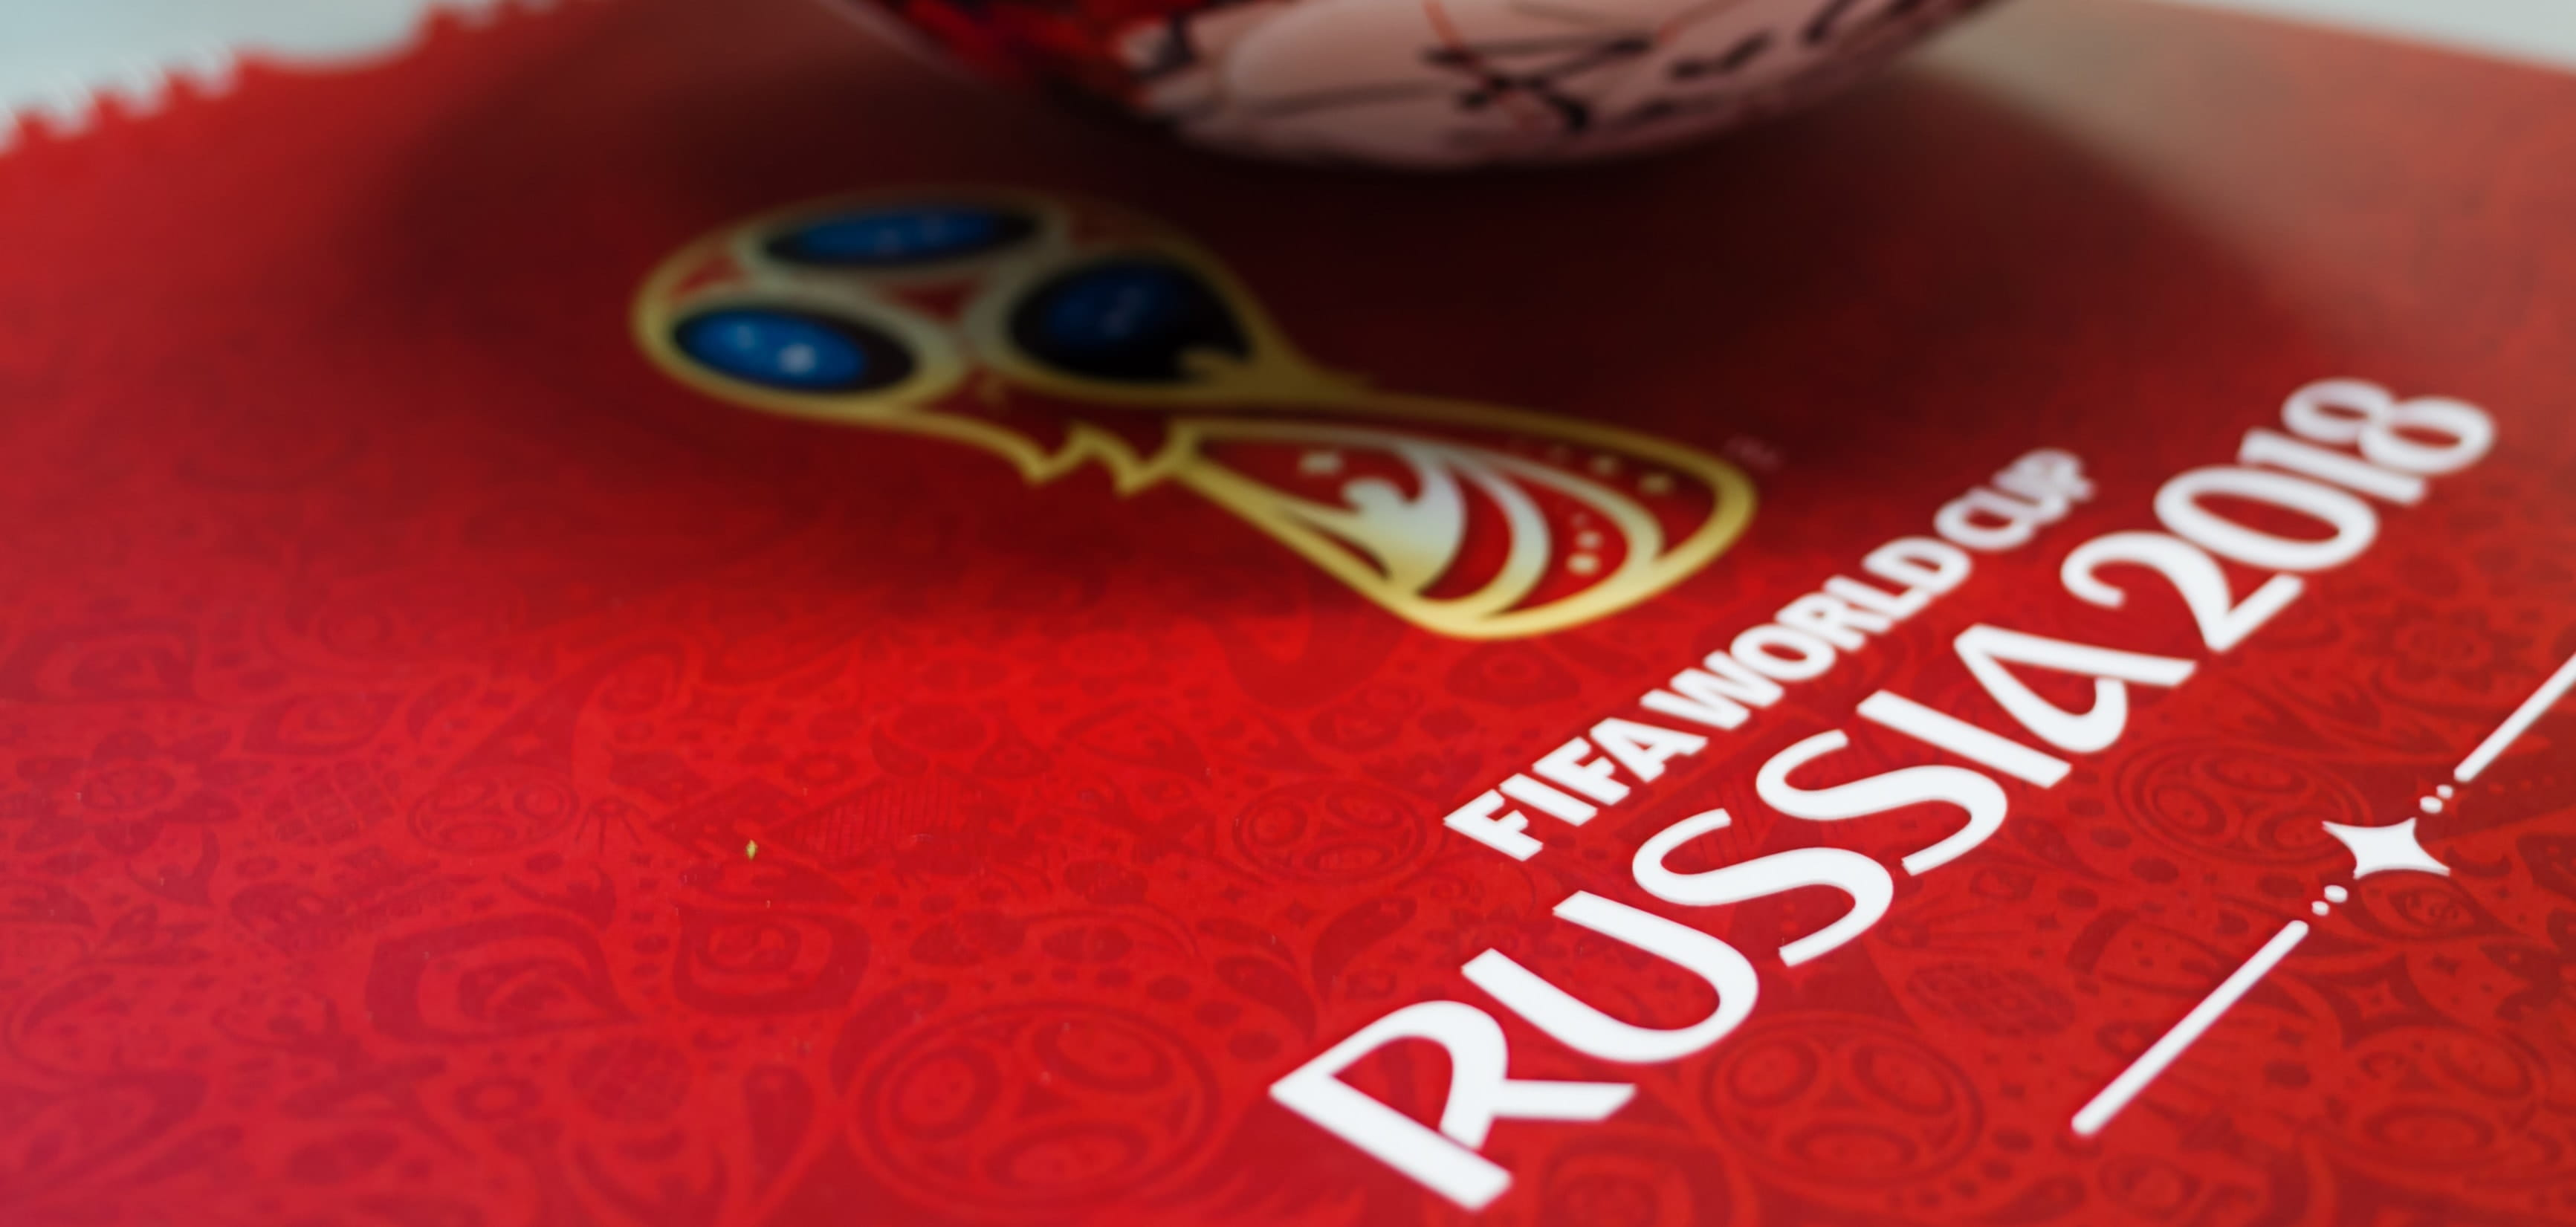 https://economia.icaew.com:443/-/media/economia/images/article-images/footballrussiaworldcup2018-630-min.ashx